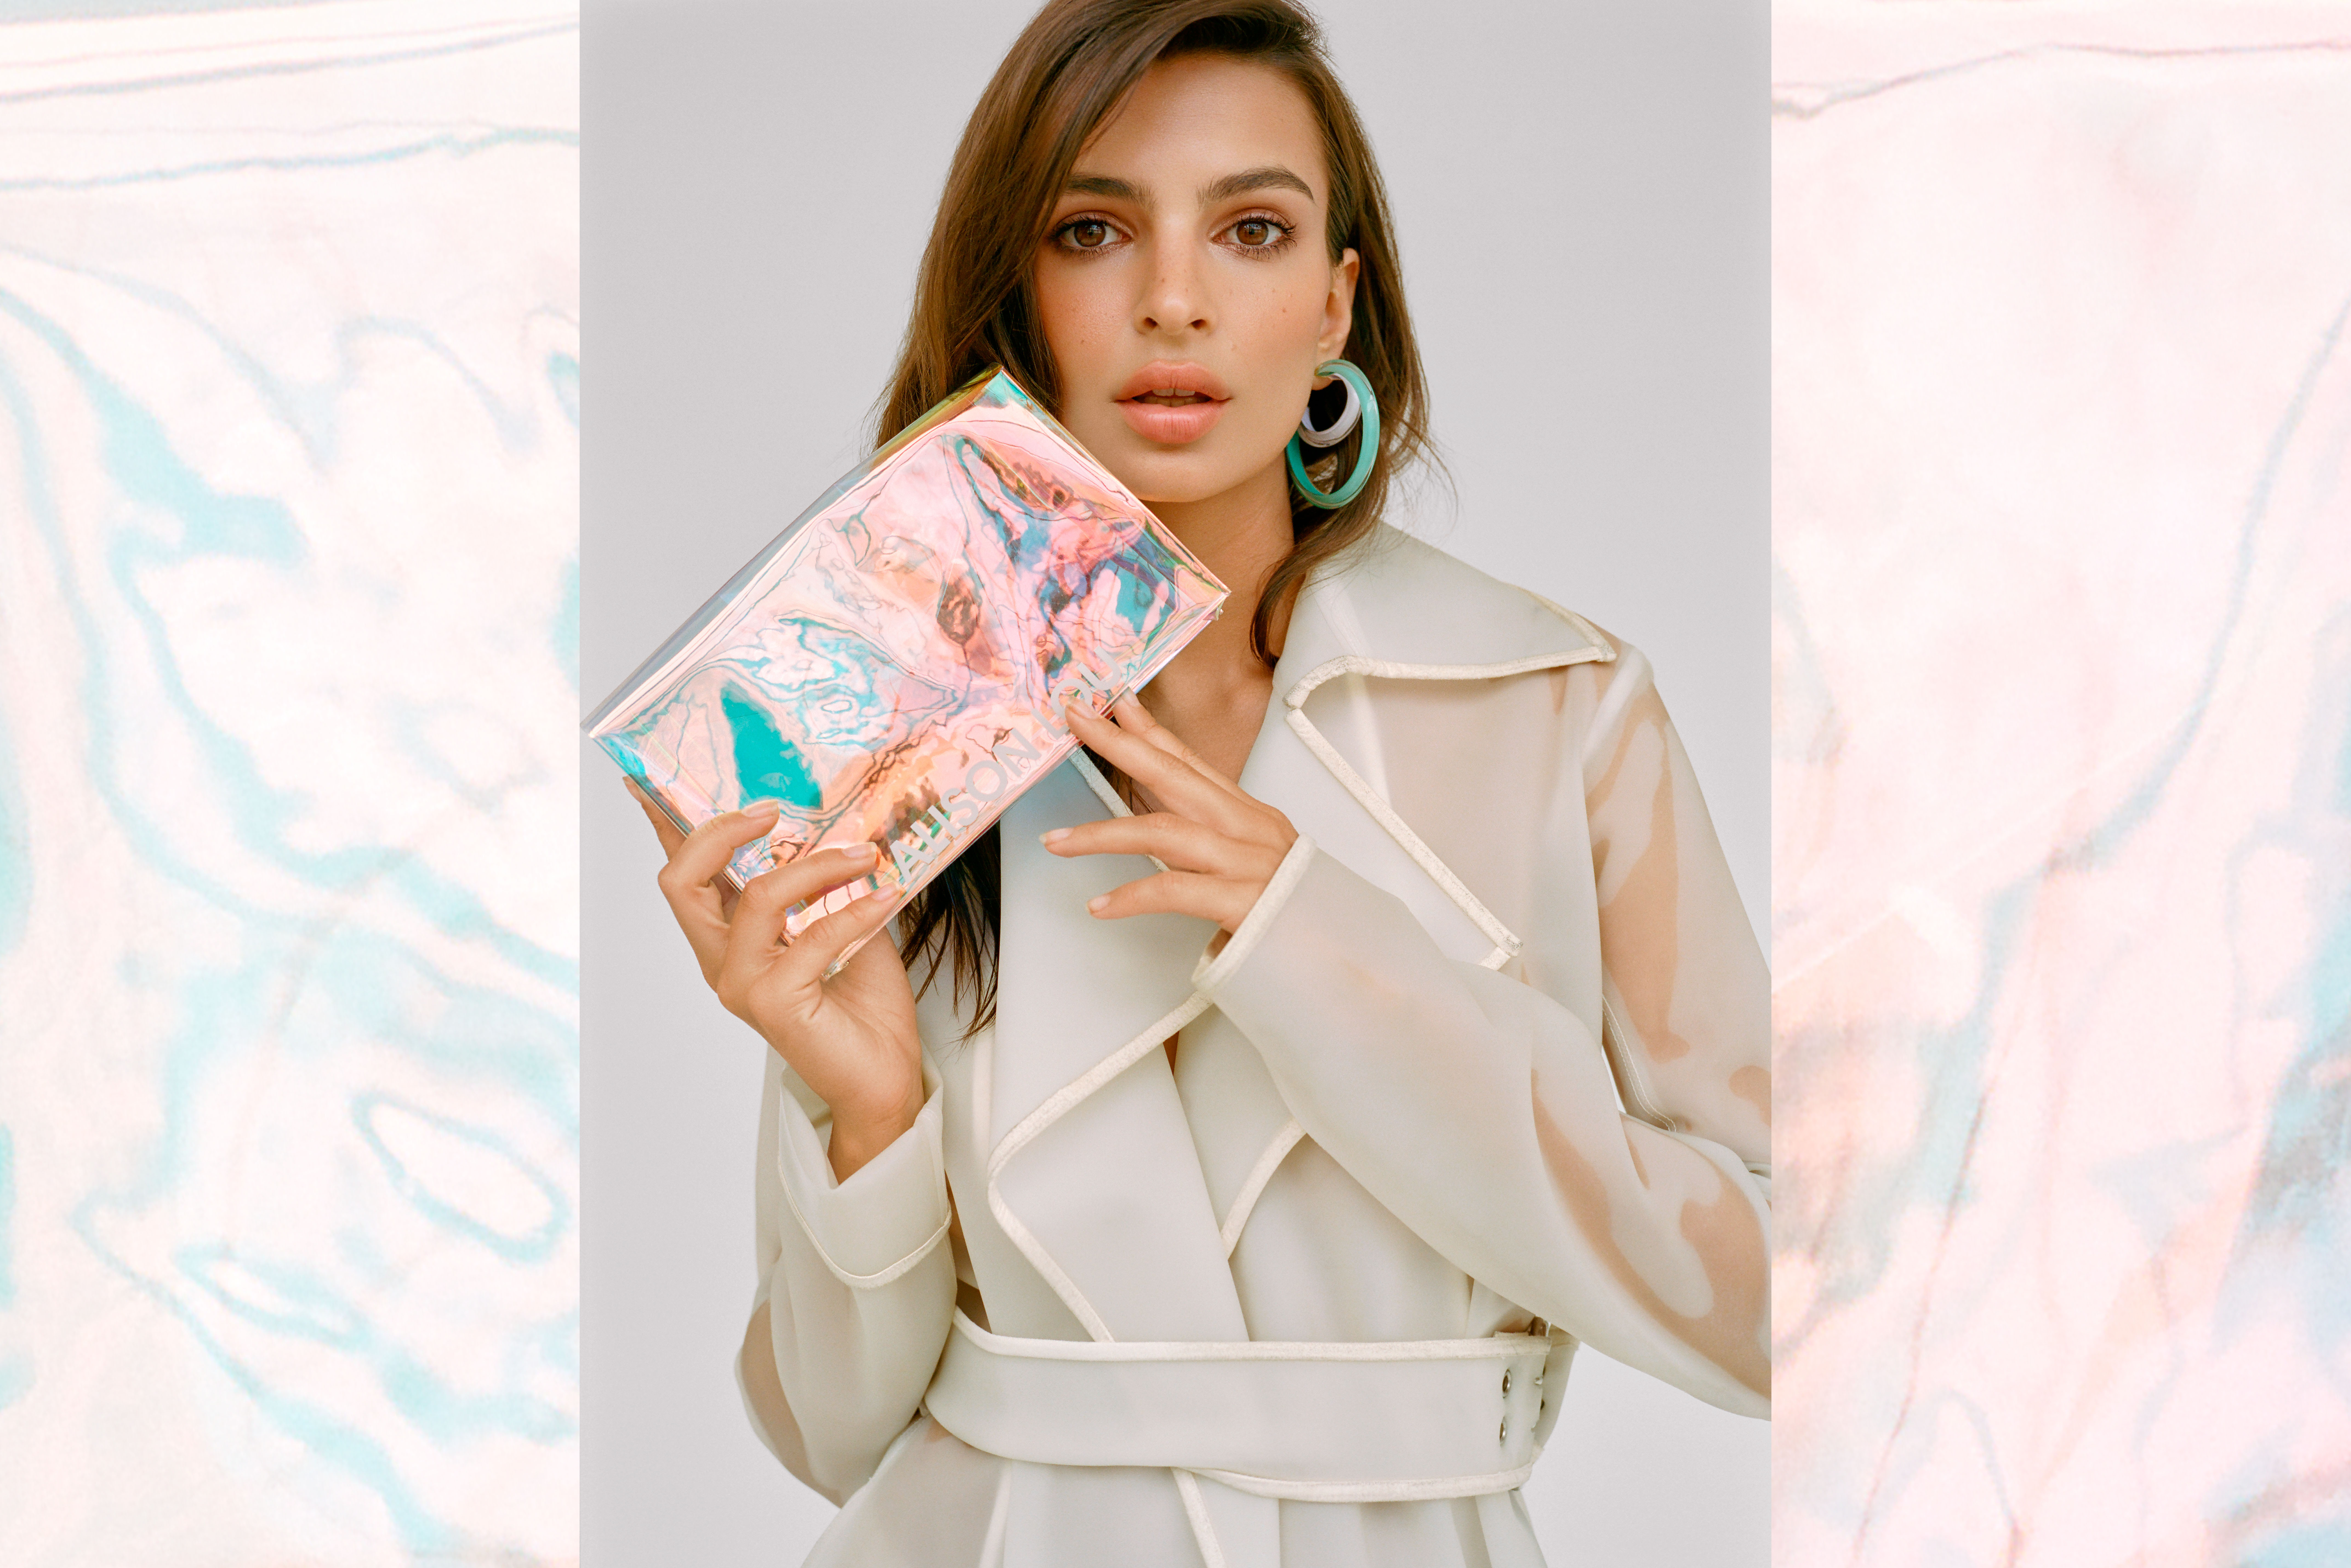 Emily Ratajkowski in the LOUCITE by Alison Lou look book